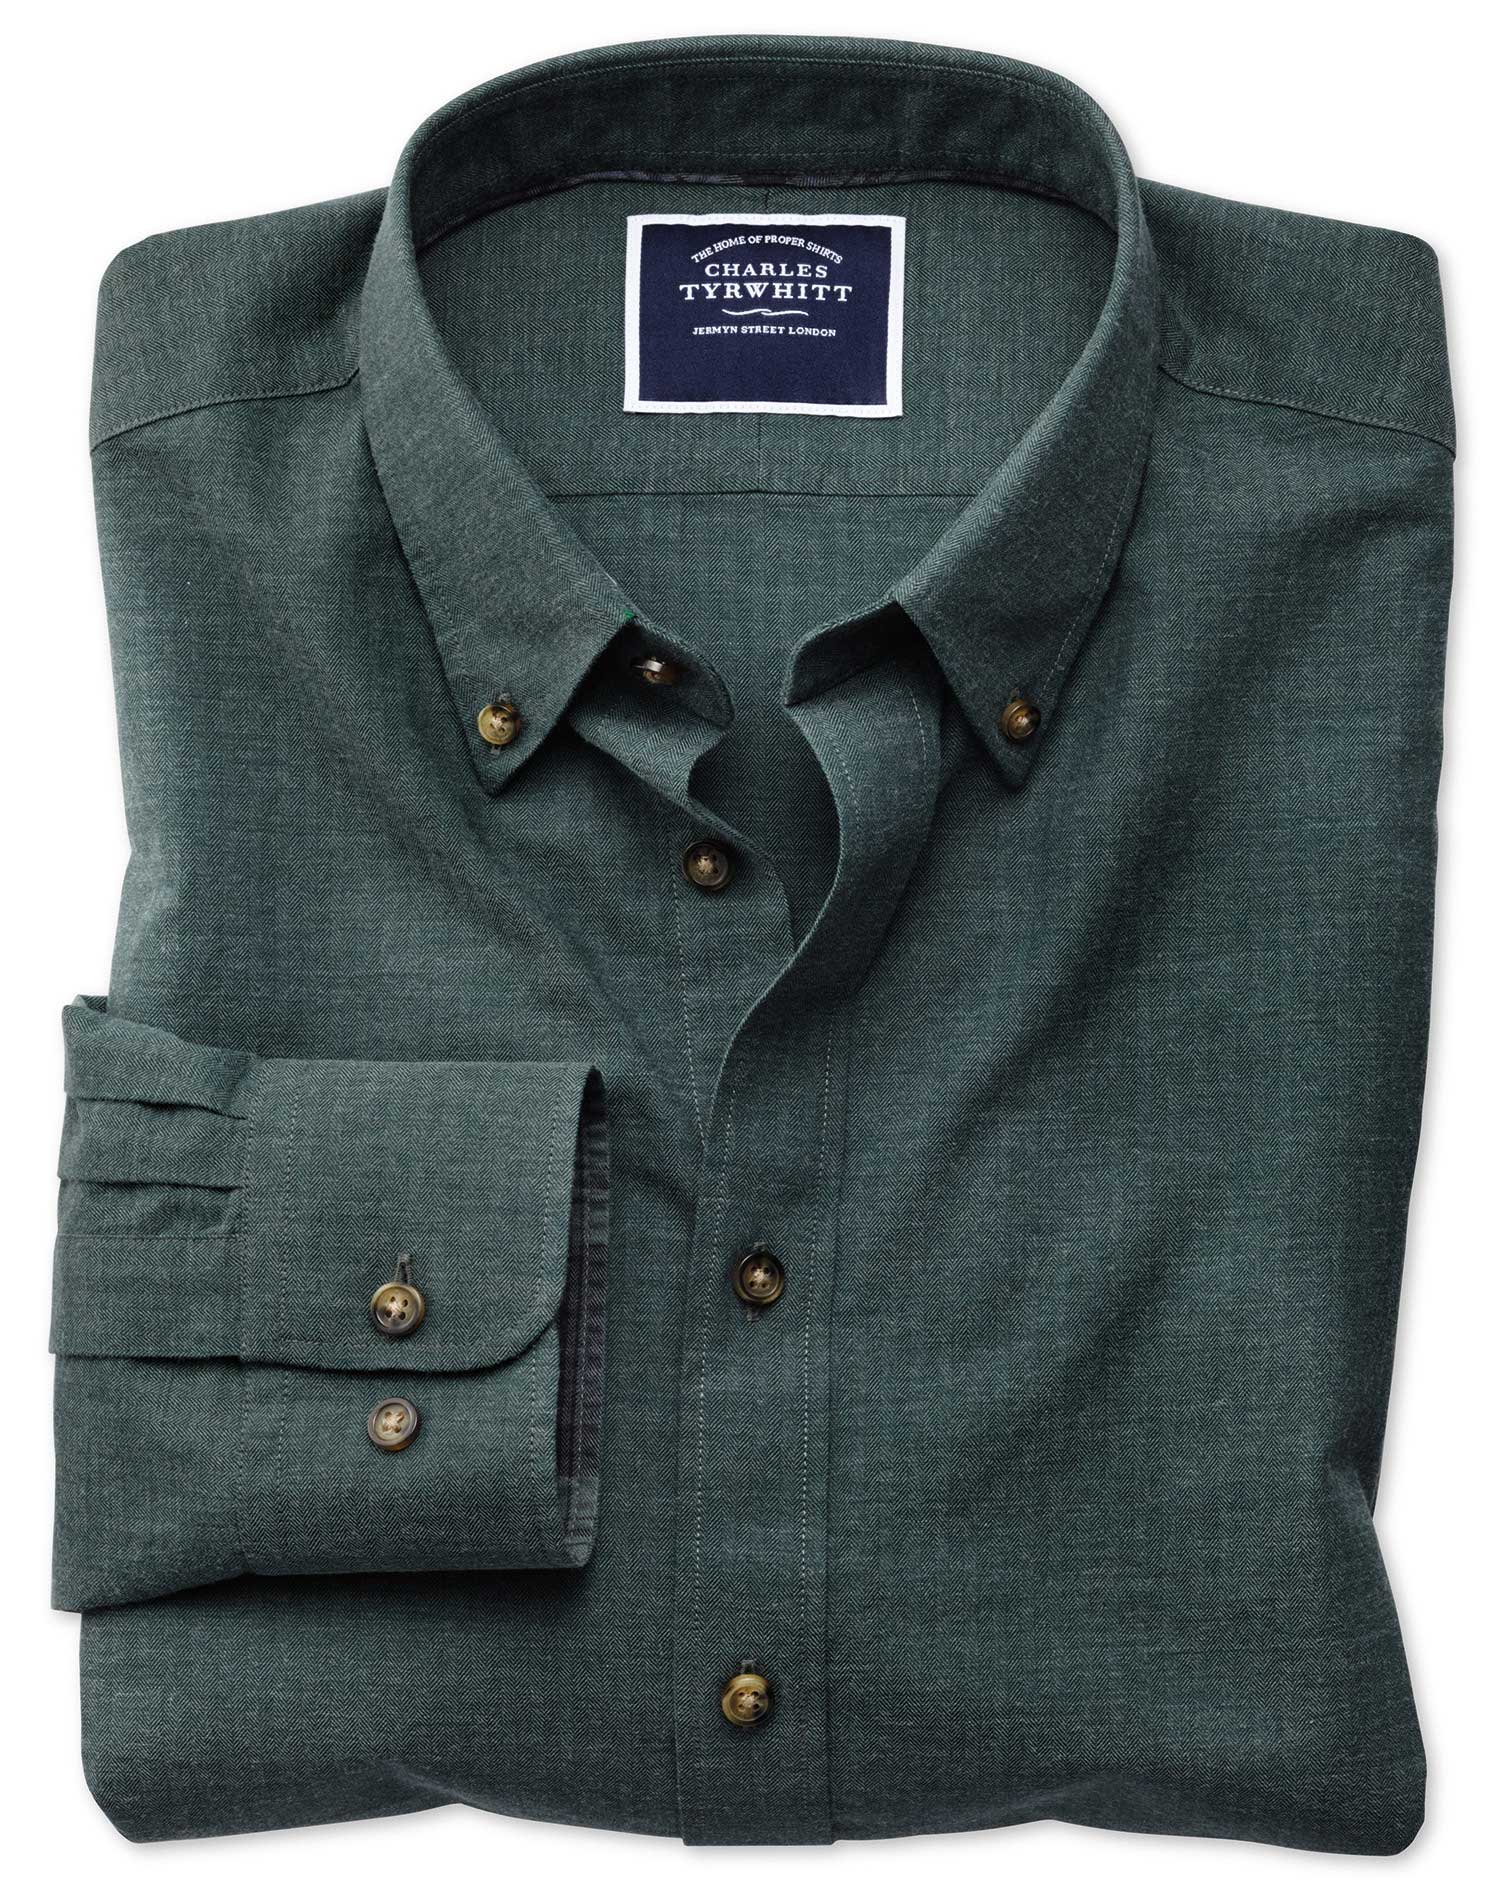 Extra Slim Fit Green Herringbone Melange Cotton Shirt Single Cuff Size Small by Charles Tyrwhitt